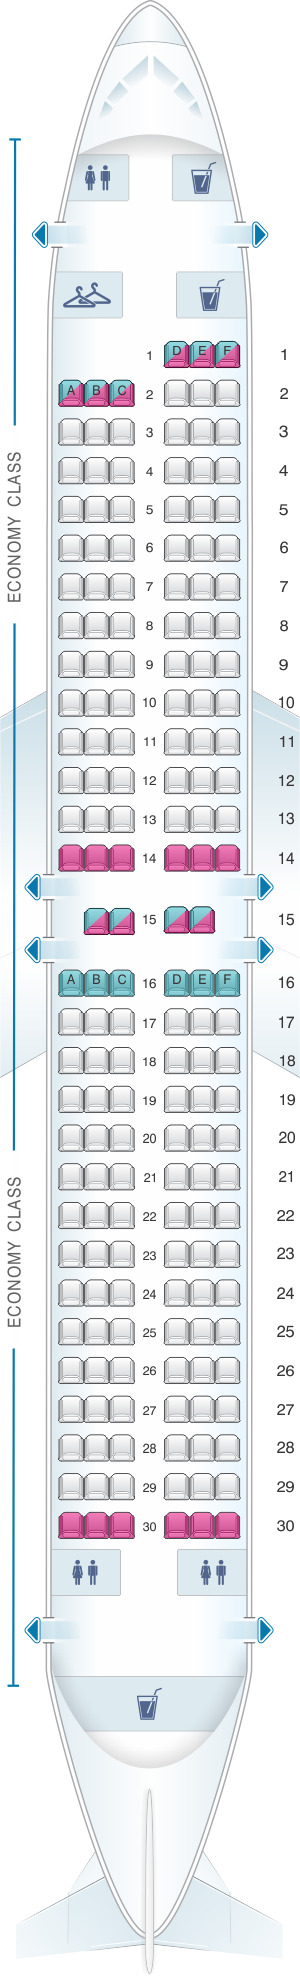 Seat map for Southwest Airlines Boeing B737 MAX 8